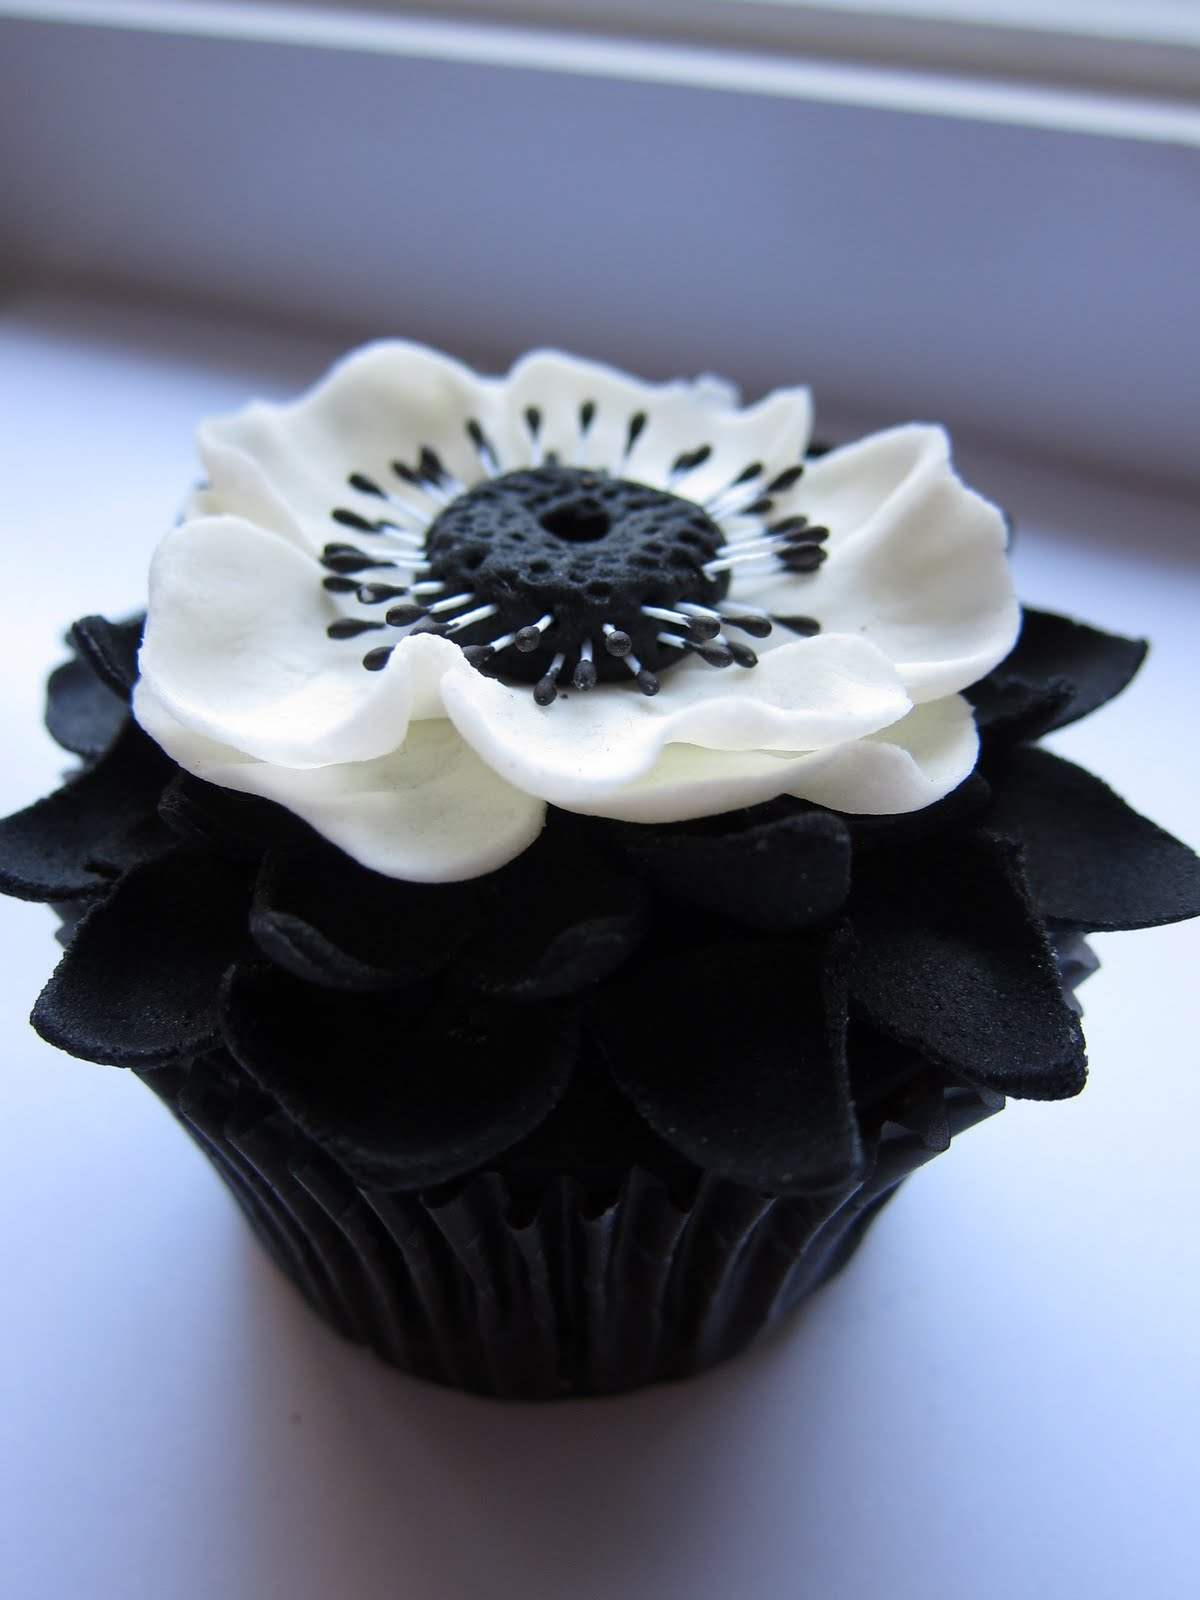 Icing Designs: Cupcake Couture Cupcake Contest Winner